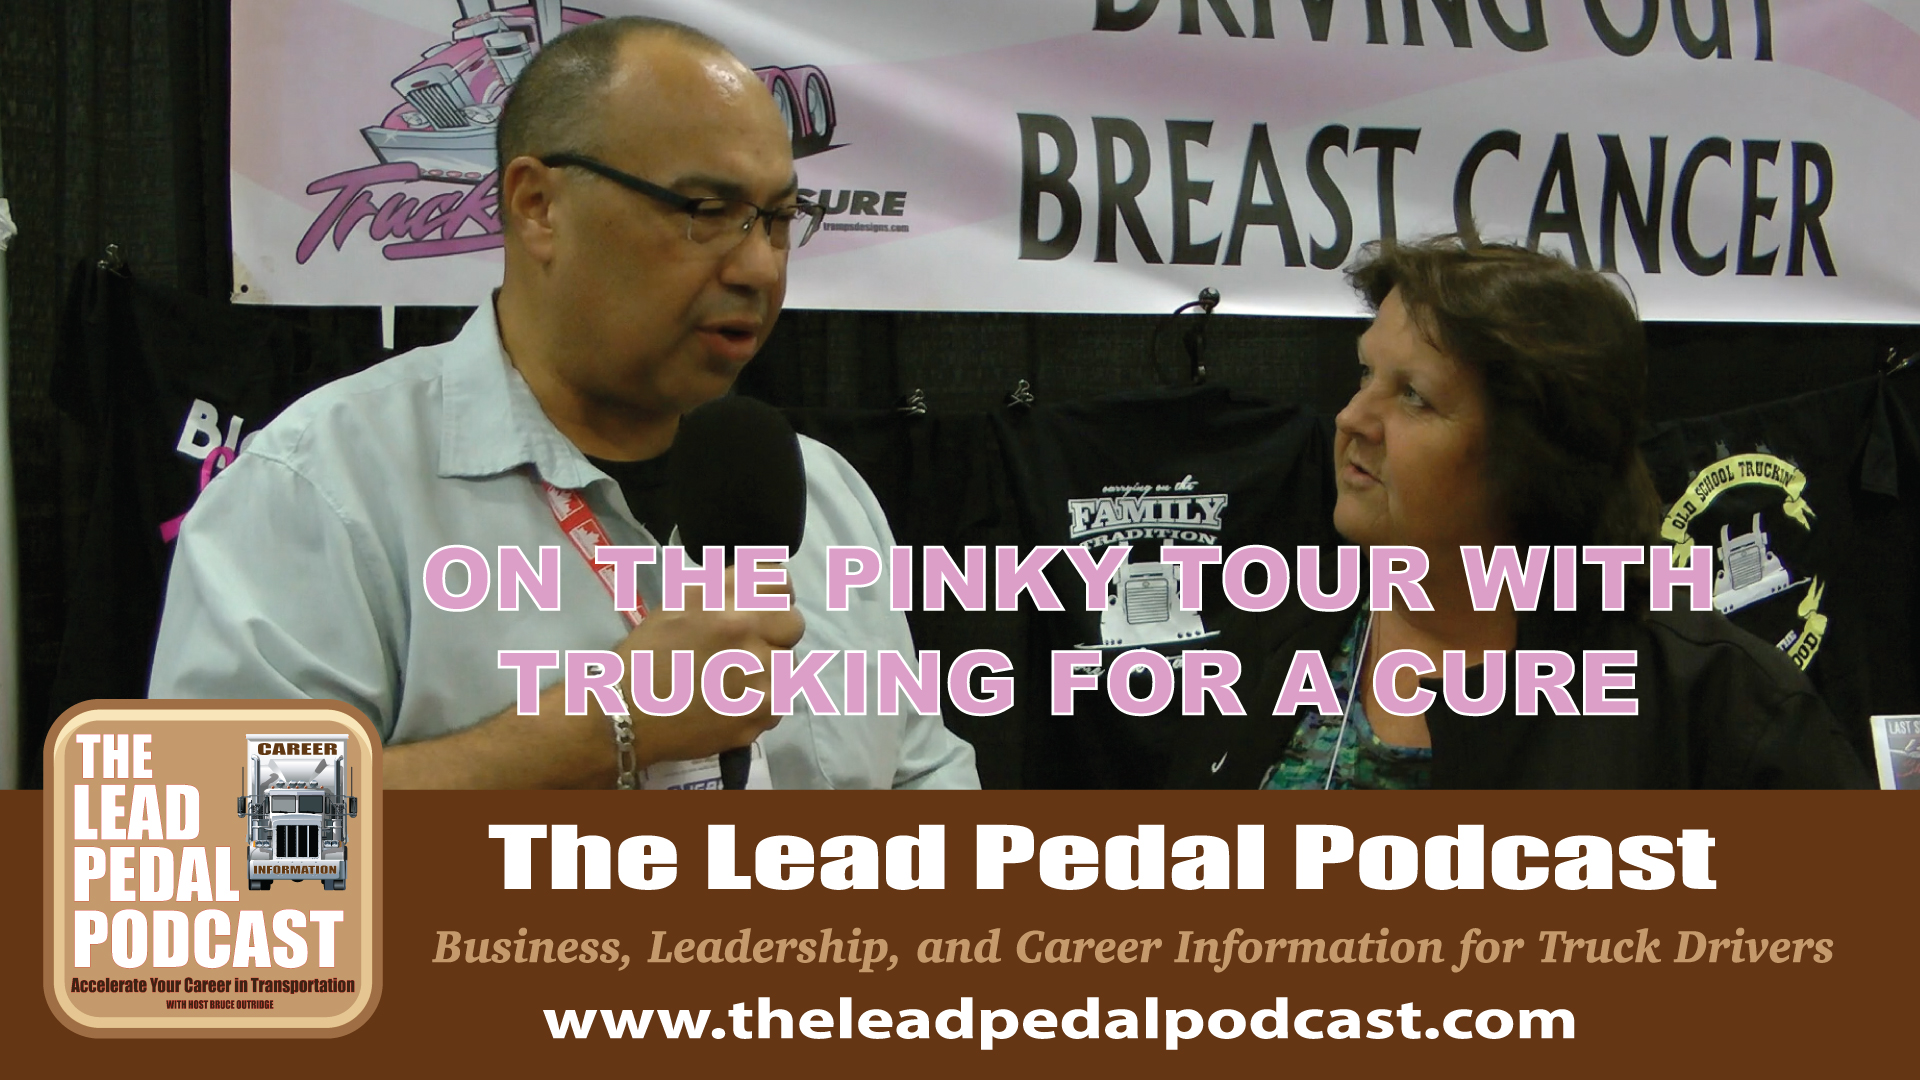 Trucking for a Cure's Pink Tour